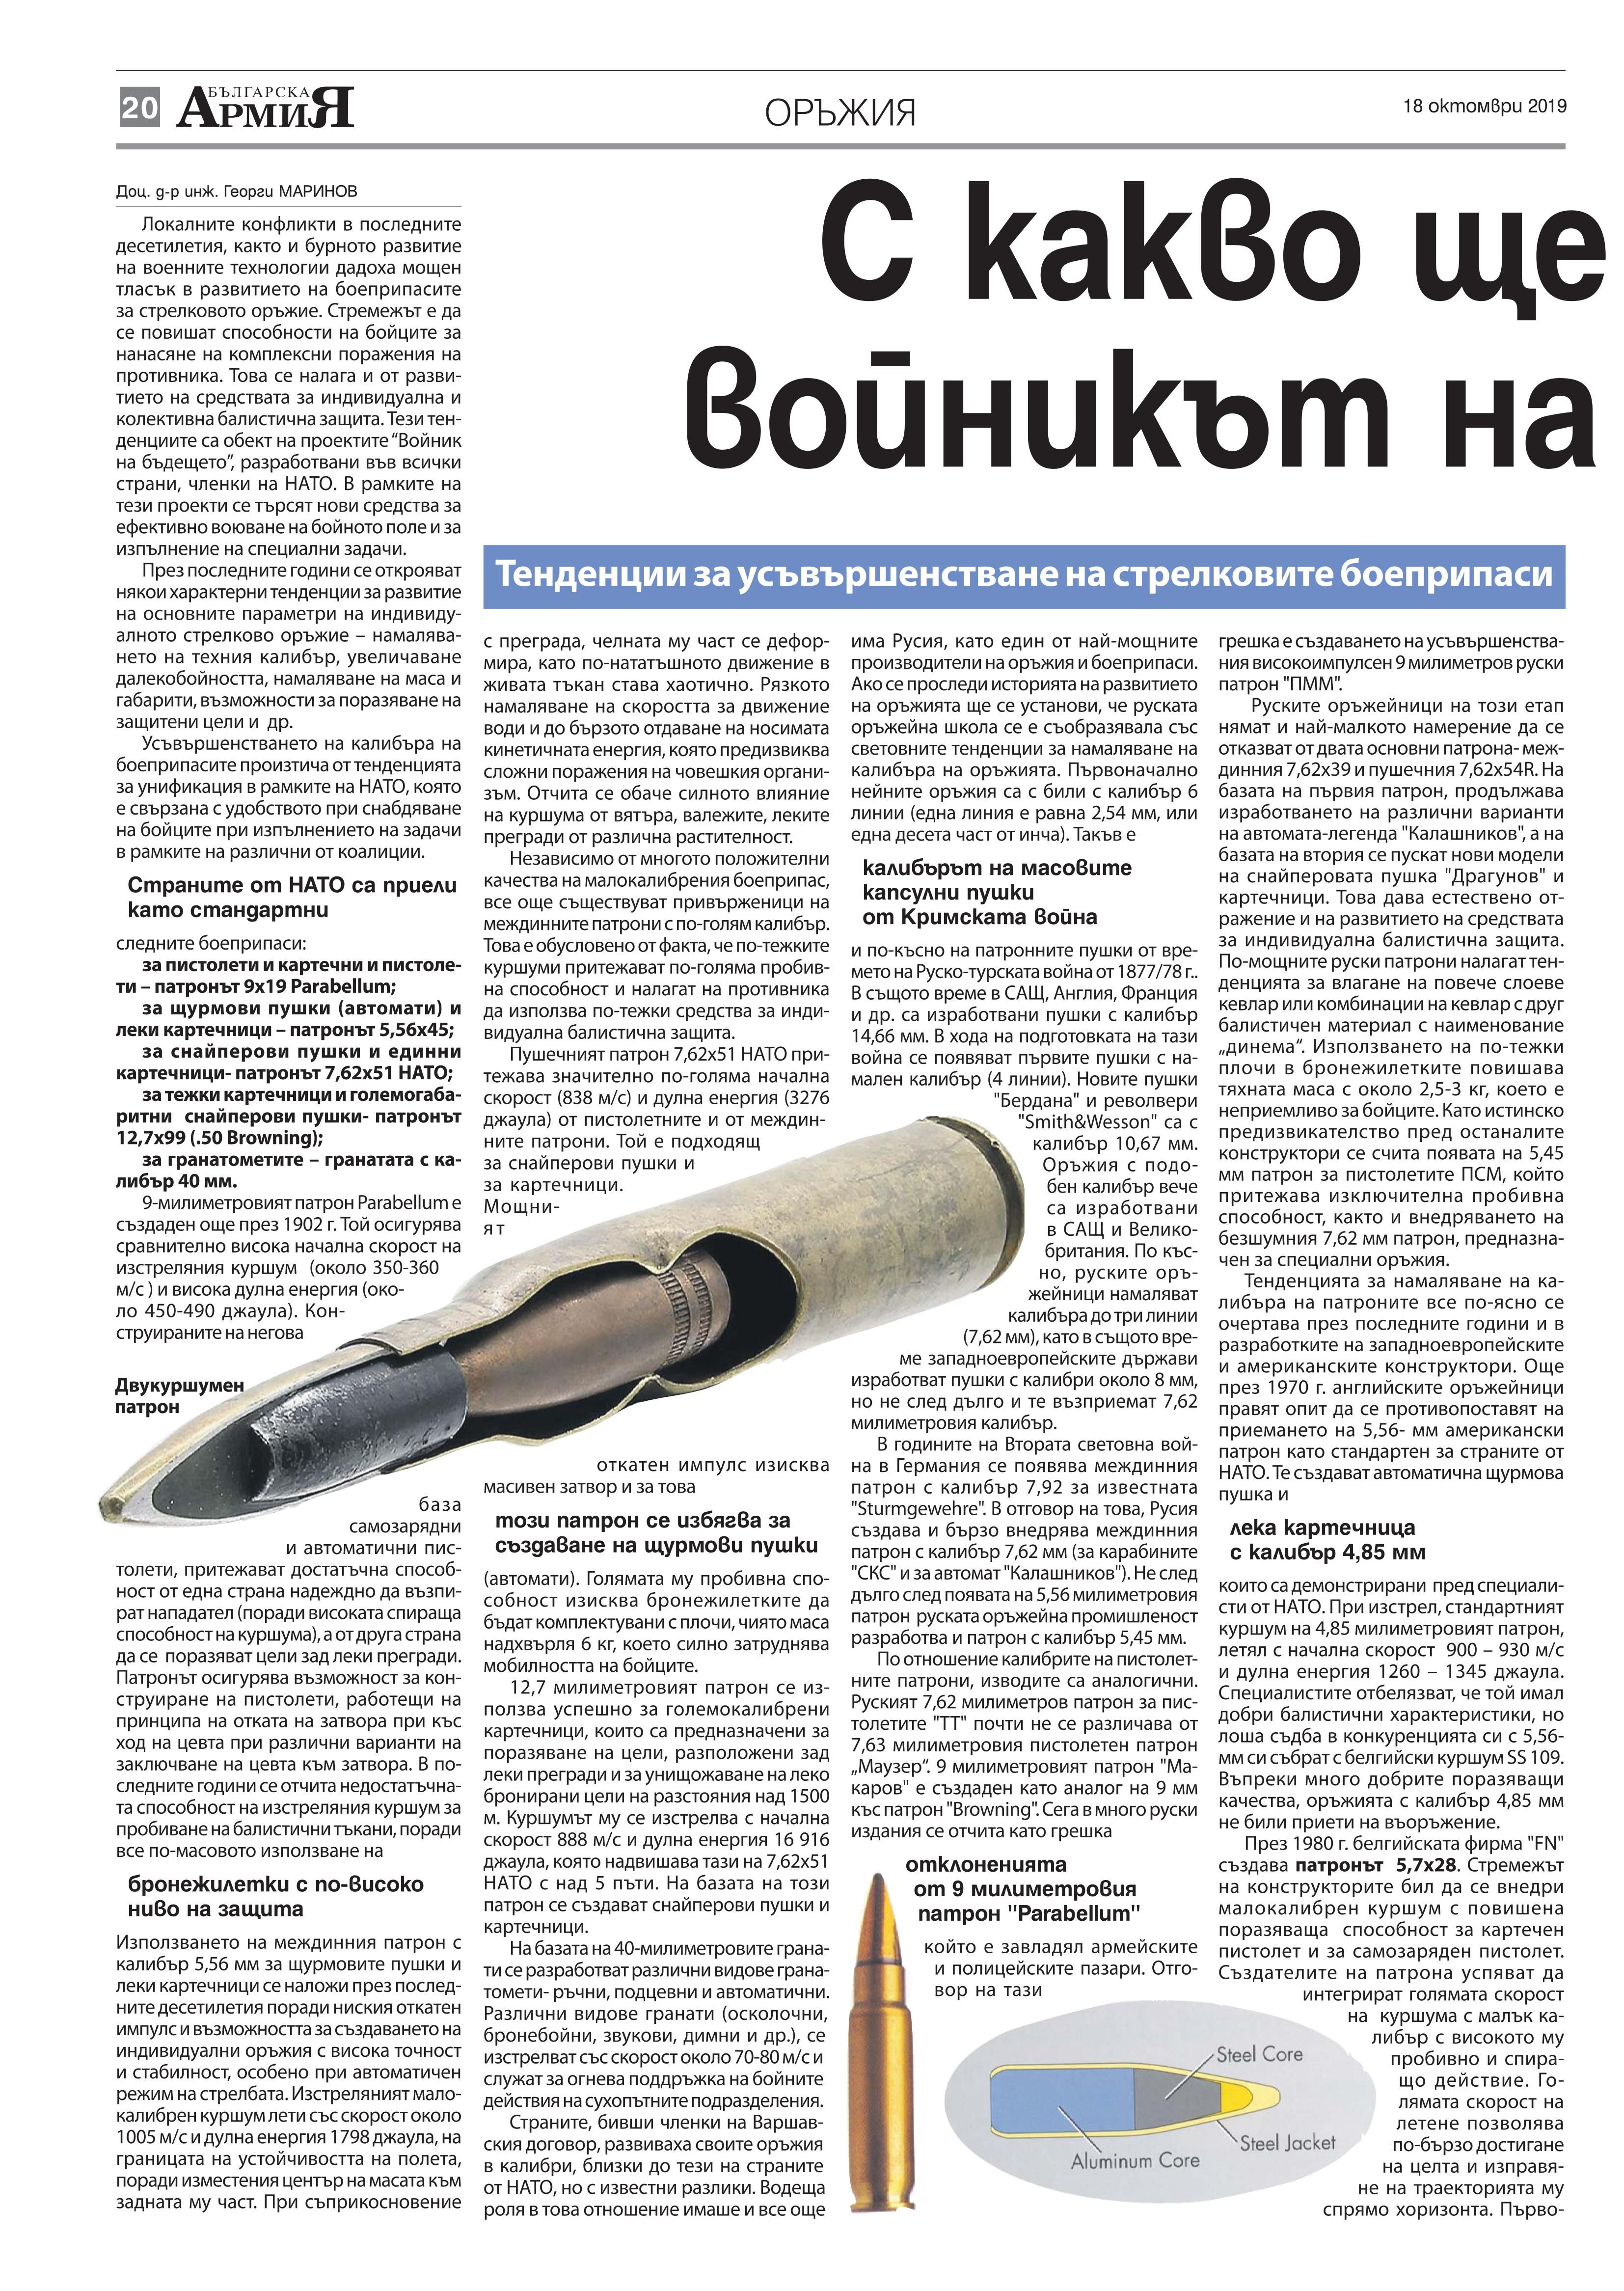 https://www.armymedia.bg/wp-content/uploads/2015/06/20.page1_-112.jpg